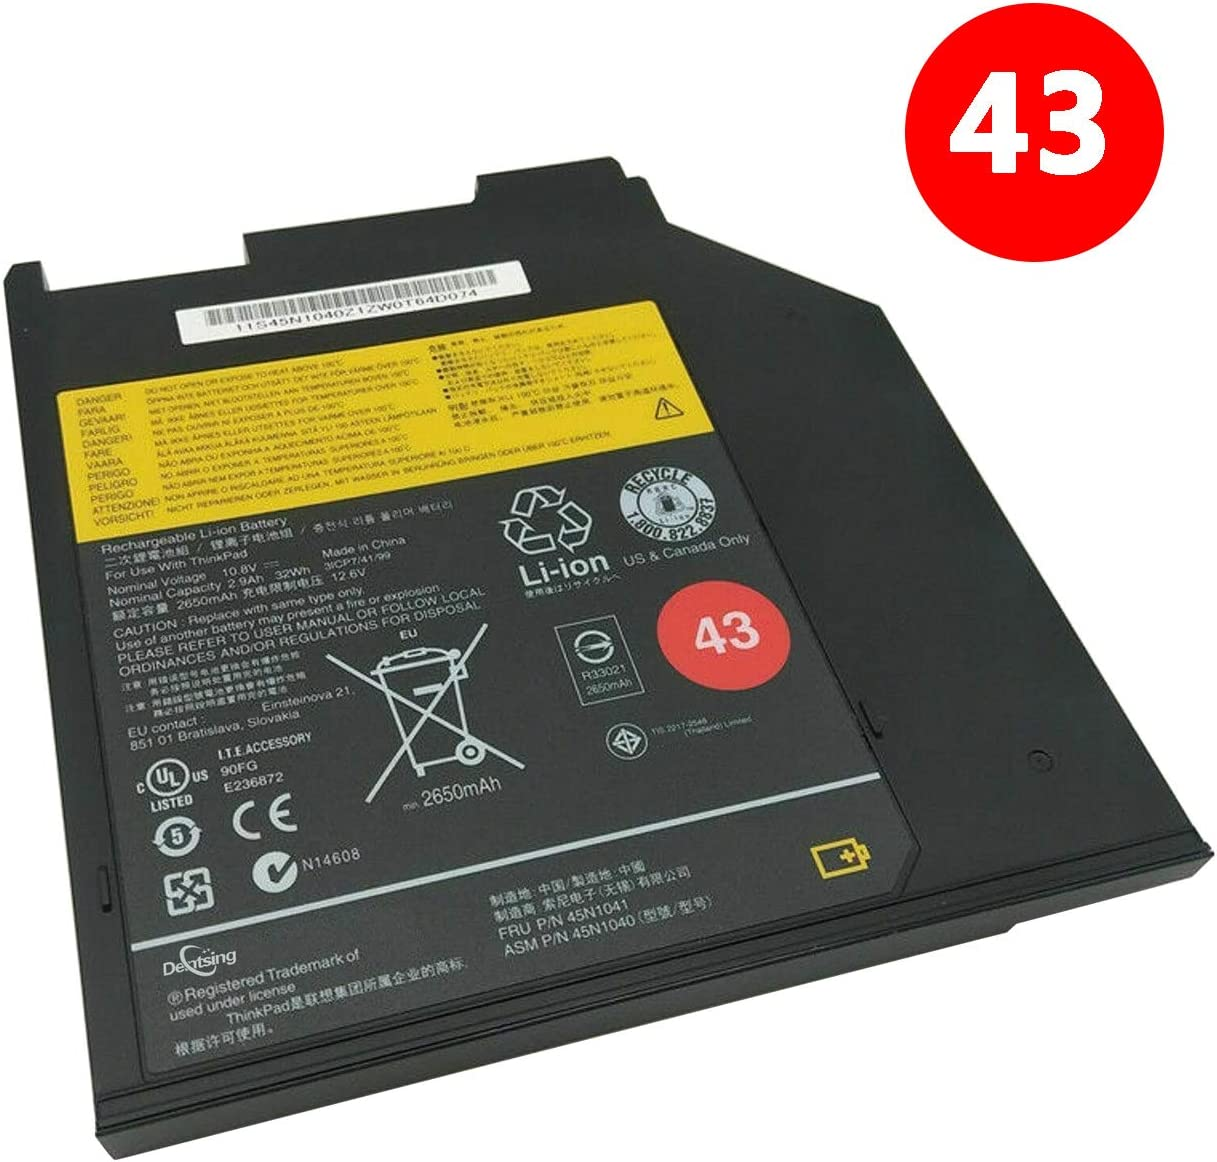 Dentsing 45N1041 (10.8V 32Wh/2650mAh 3-Cells) Laptop Ultrabay Battery Compatible with Lenovo Thinkpad T400S T410S T420S T430 T430S T500 Series Notebook 43 45N1040 0a36310